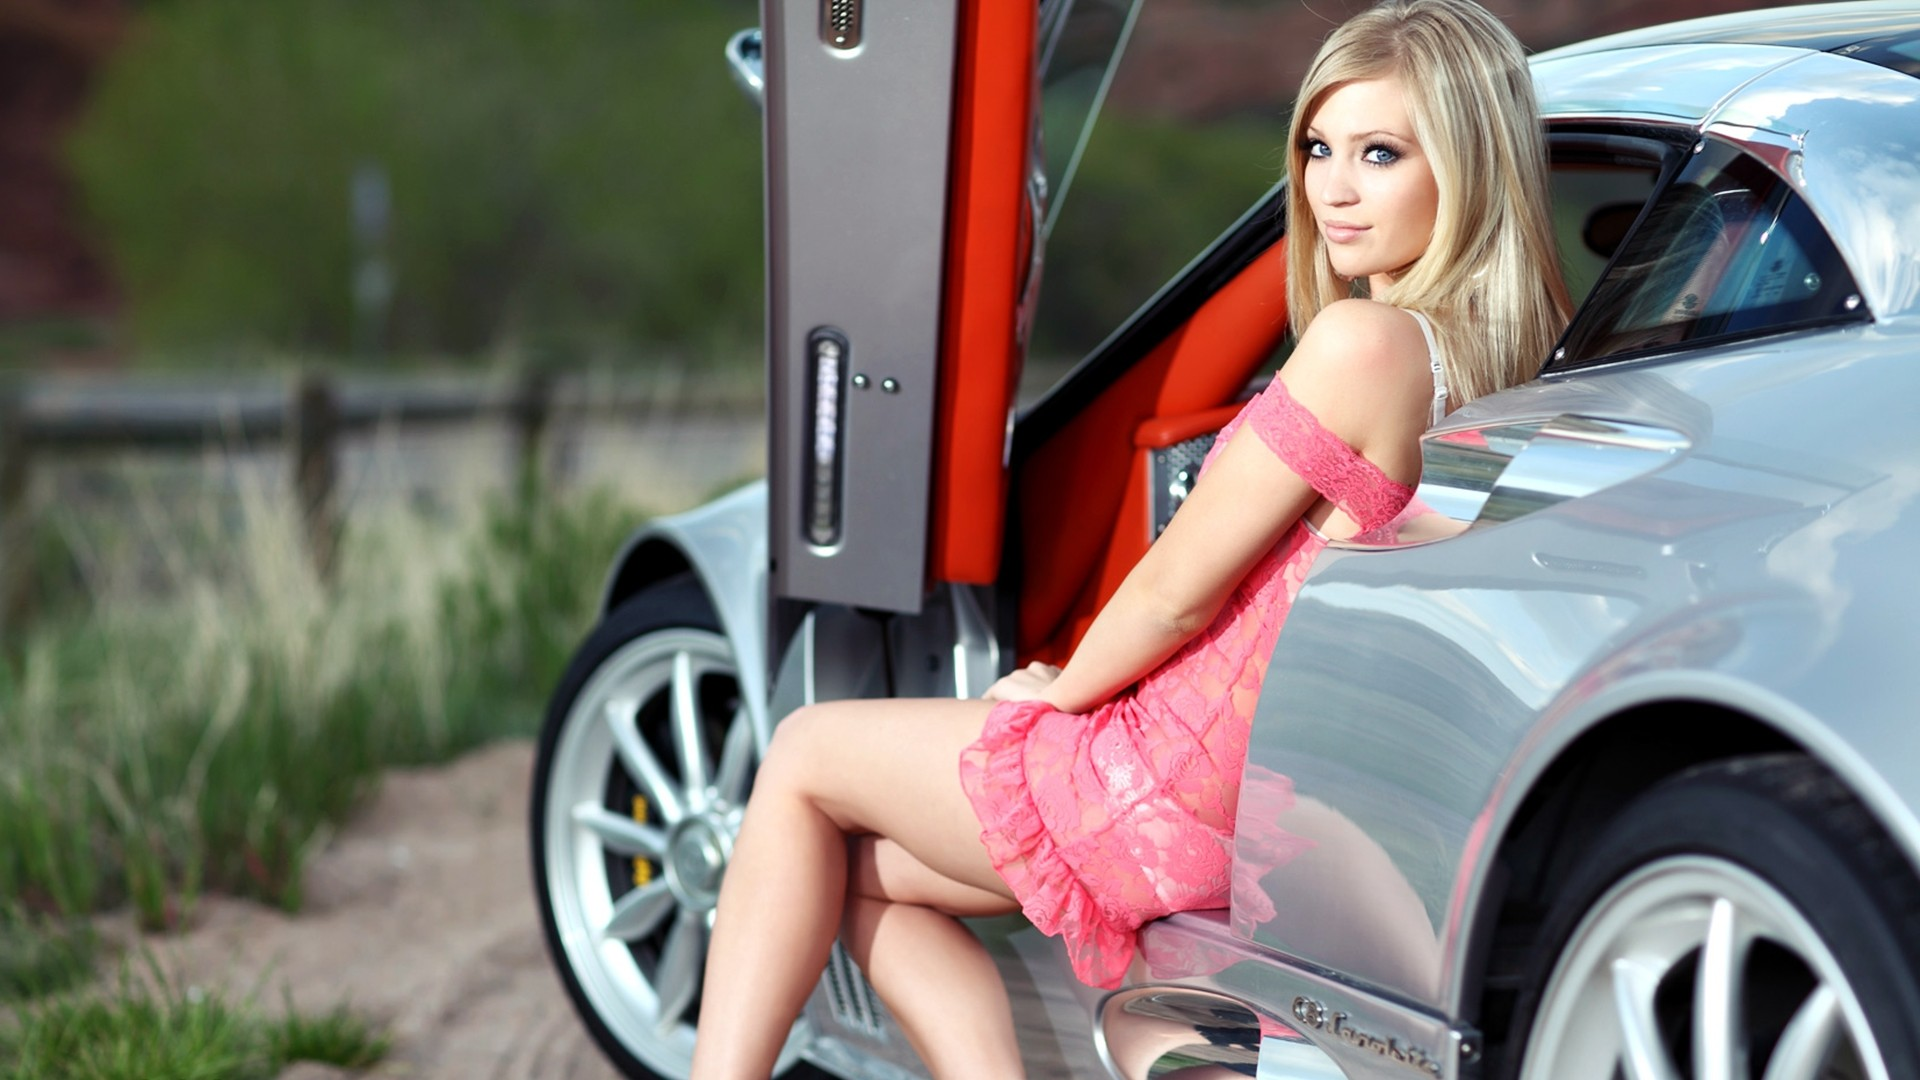 The Images of Blondes Legs Women Cars Blue Eyes Spyker Girls With HD Wallpaper